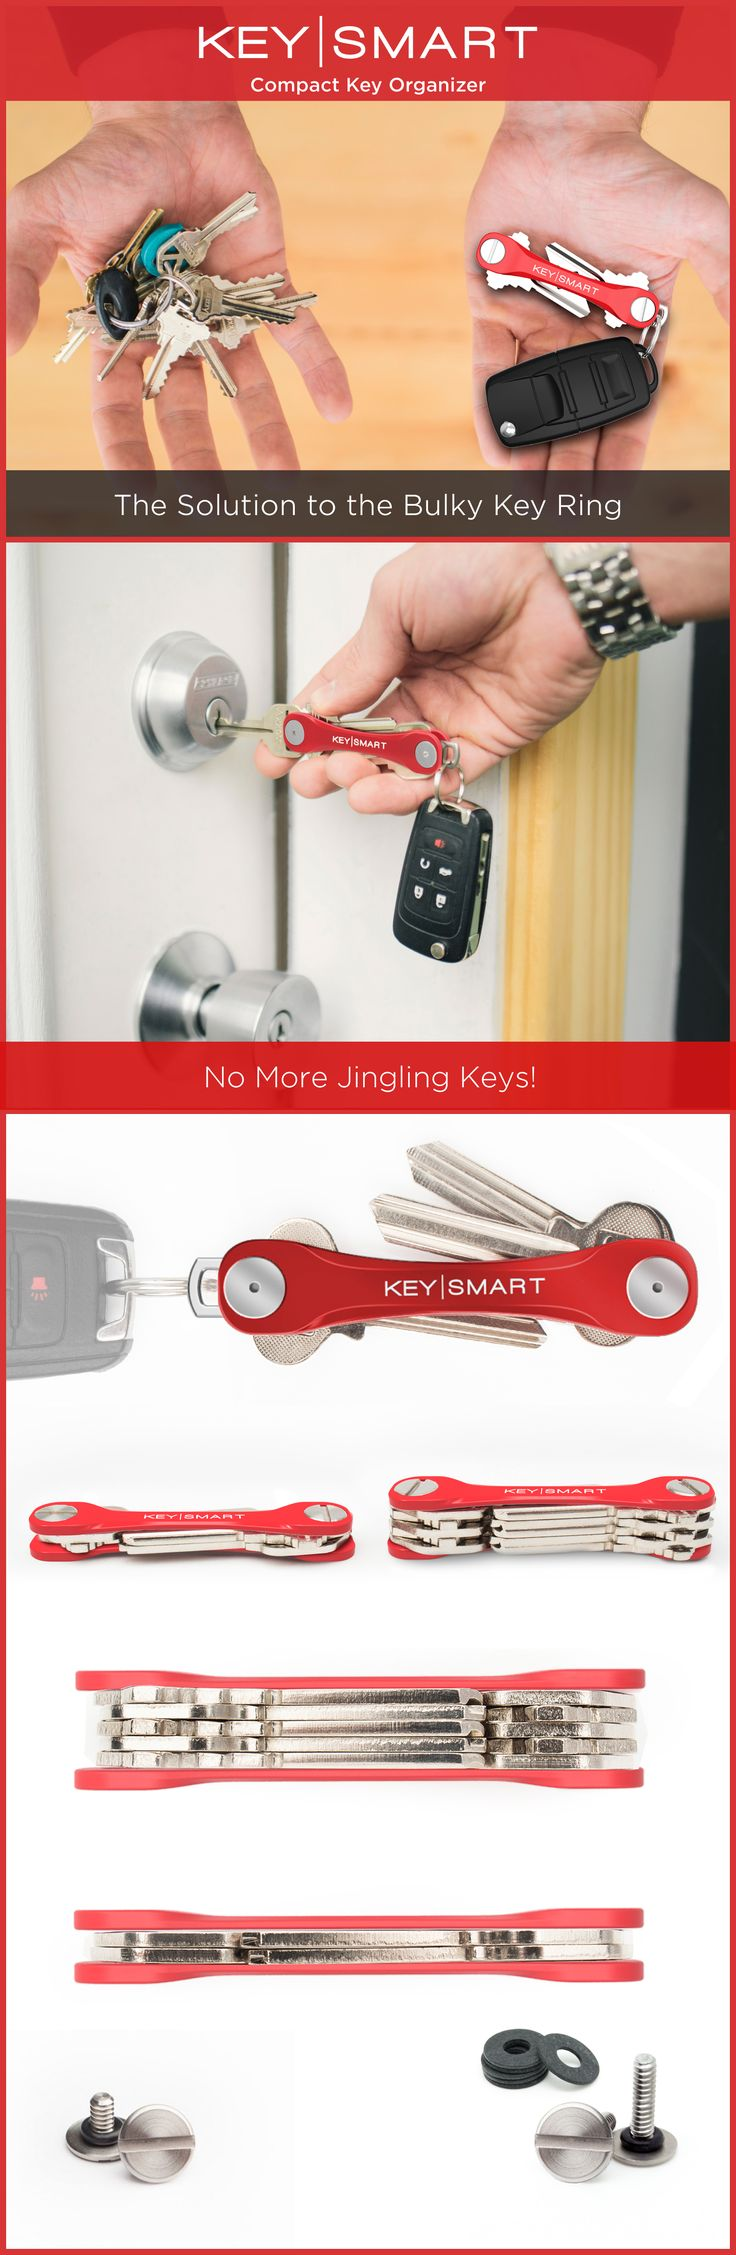 Check out this new way to organize your keys called the KeySmart! It's designed like a pocket knife and keeps your keys in a neat little stack rather than loose and messy key rings. Upgrade your every day carry. Use code ORGANIZE15 this month for 15% off!